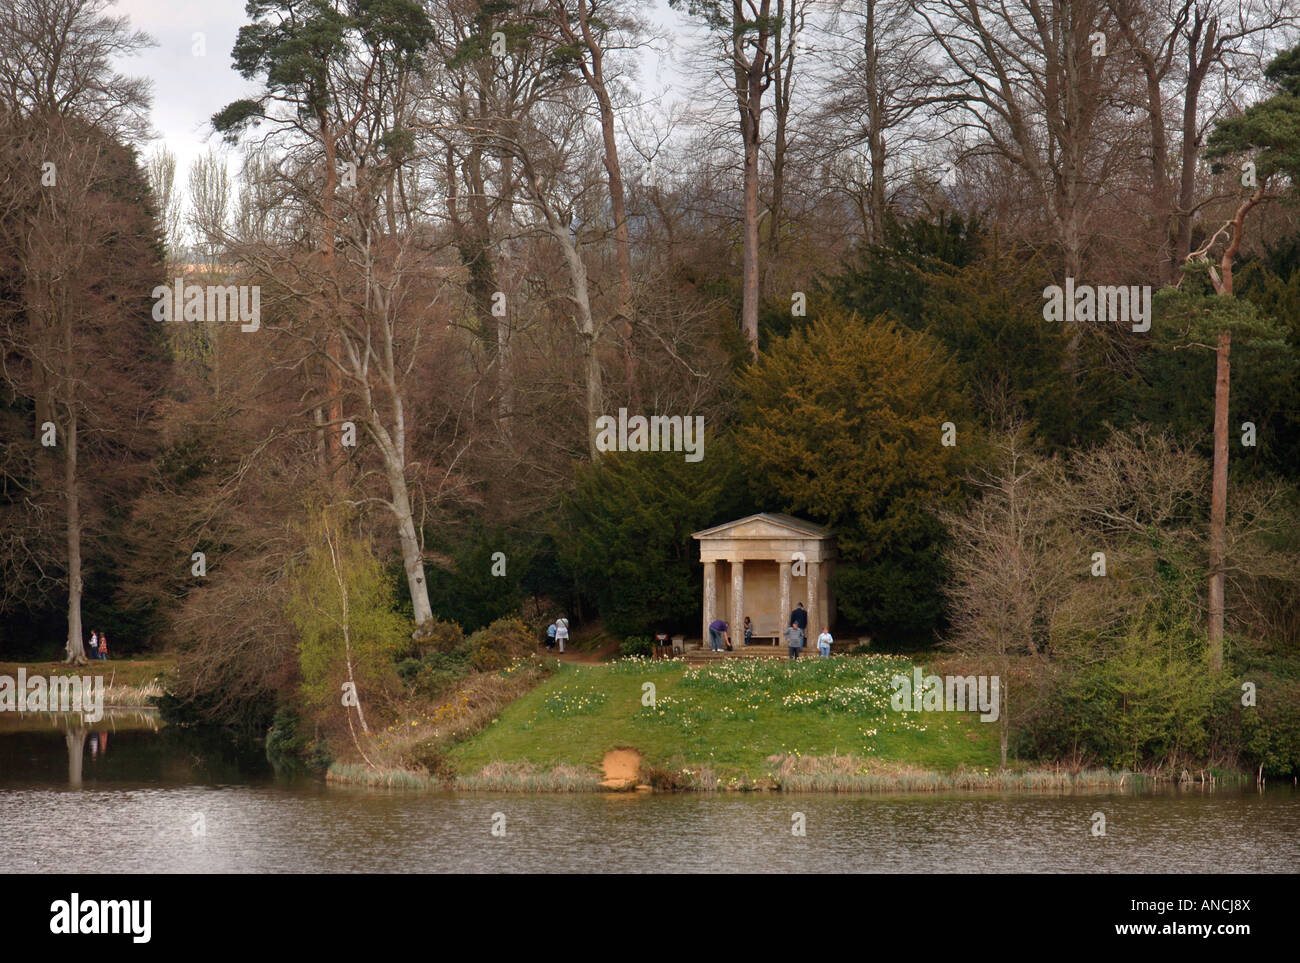 VISITORS IN THE GROUNDS OF BOWOOD HOUSE EXPLORE THE DORIC TEMPLE WHICH SITS BESIDE THE LAKE WILTSHIRE UK Stock Photo